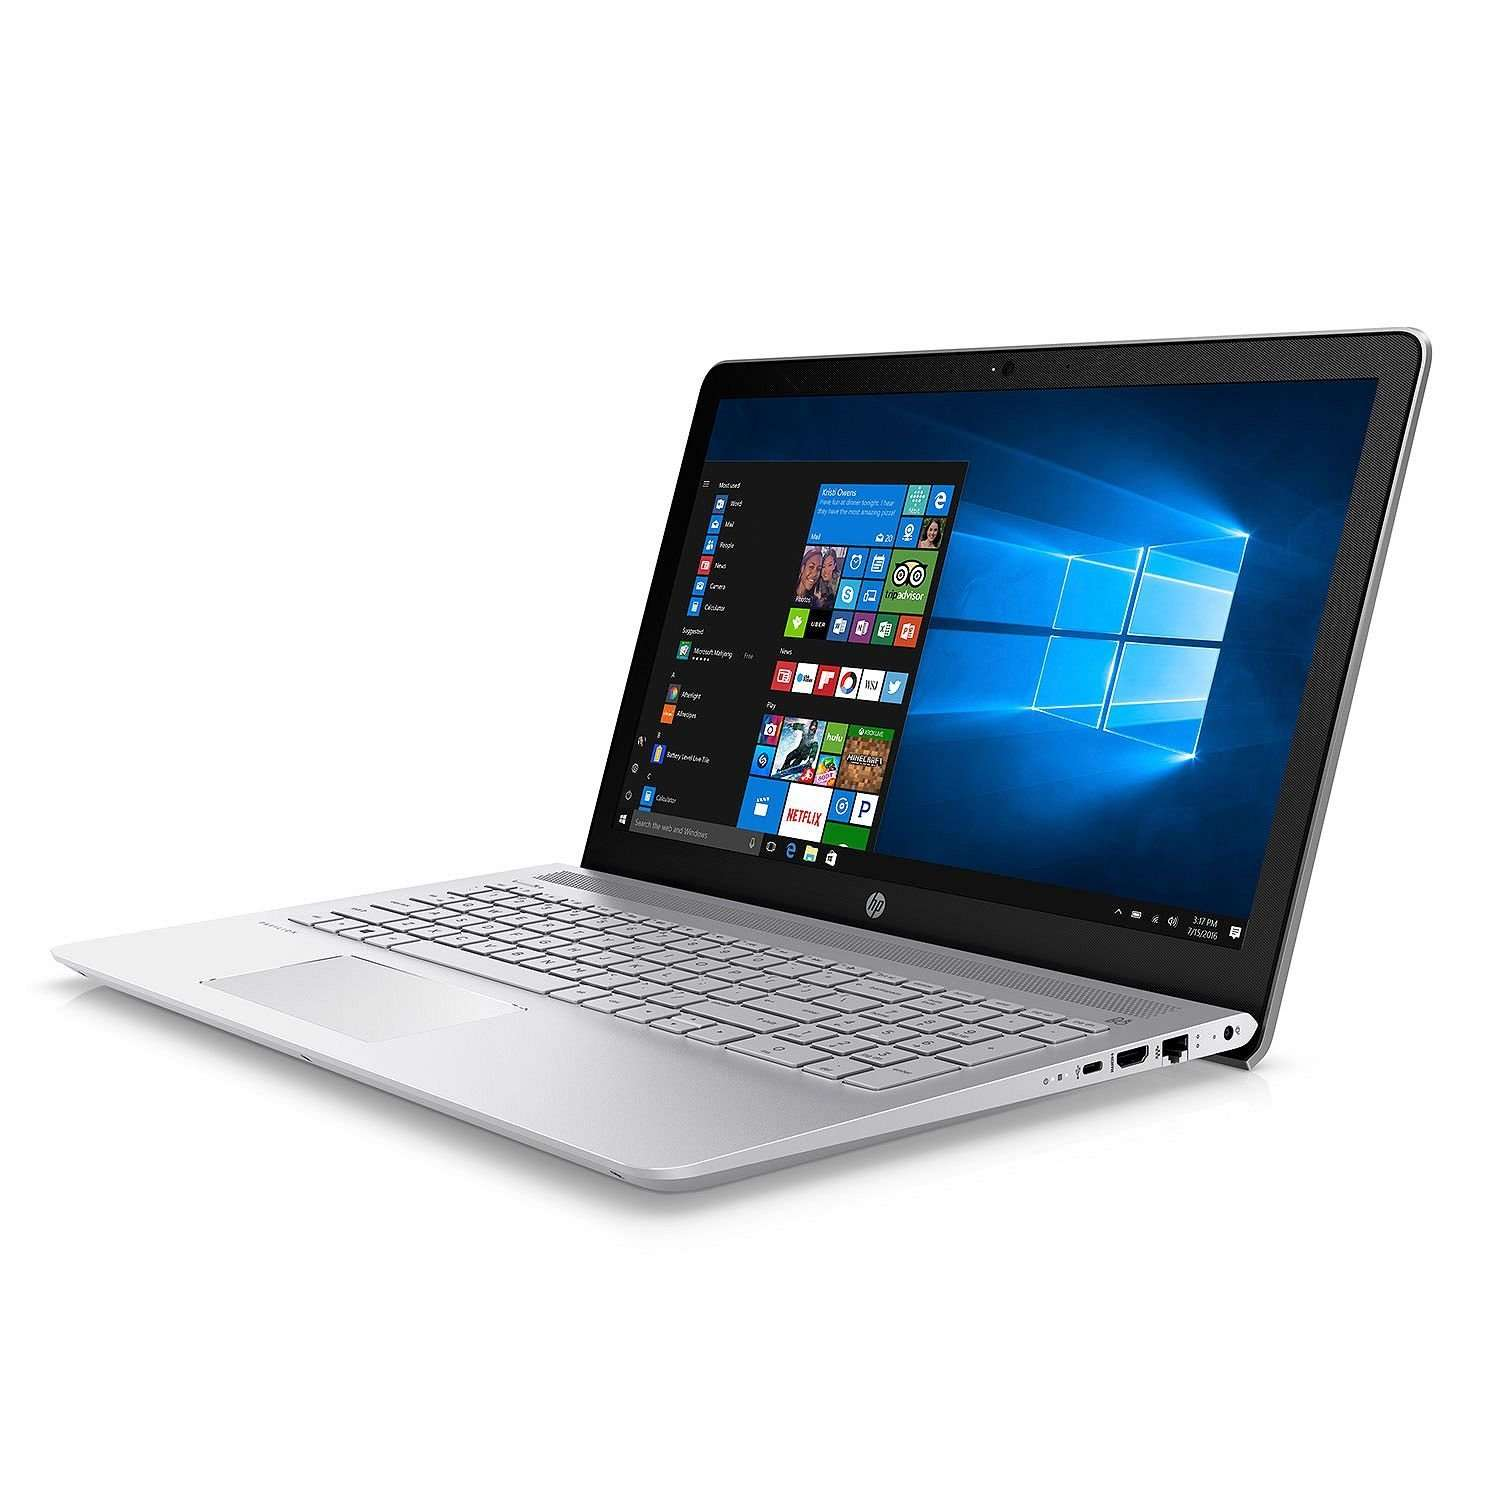 best laptops for trading - HP Pavilion